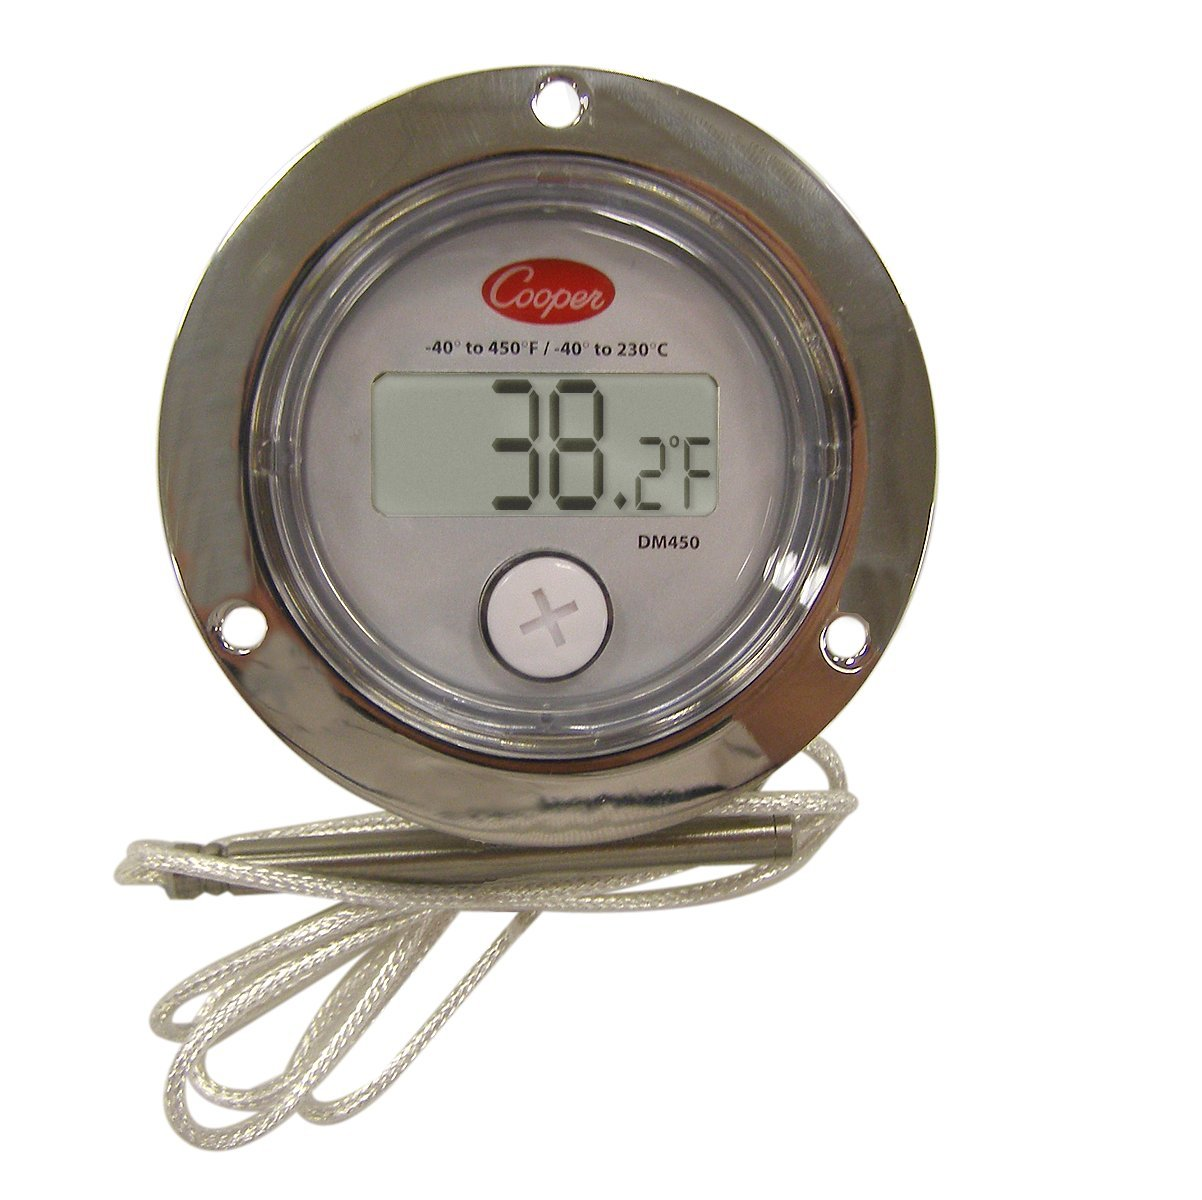 Cooper-Atkins DM450-0-3 Digital Panel Thermometer with 2'' Front Flange, -40/450° F Temperature Range by Cooper